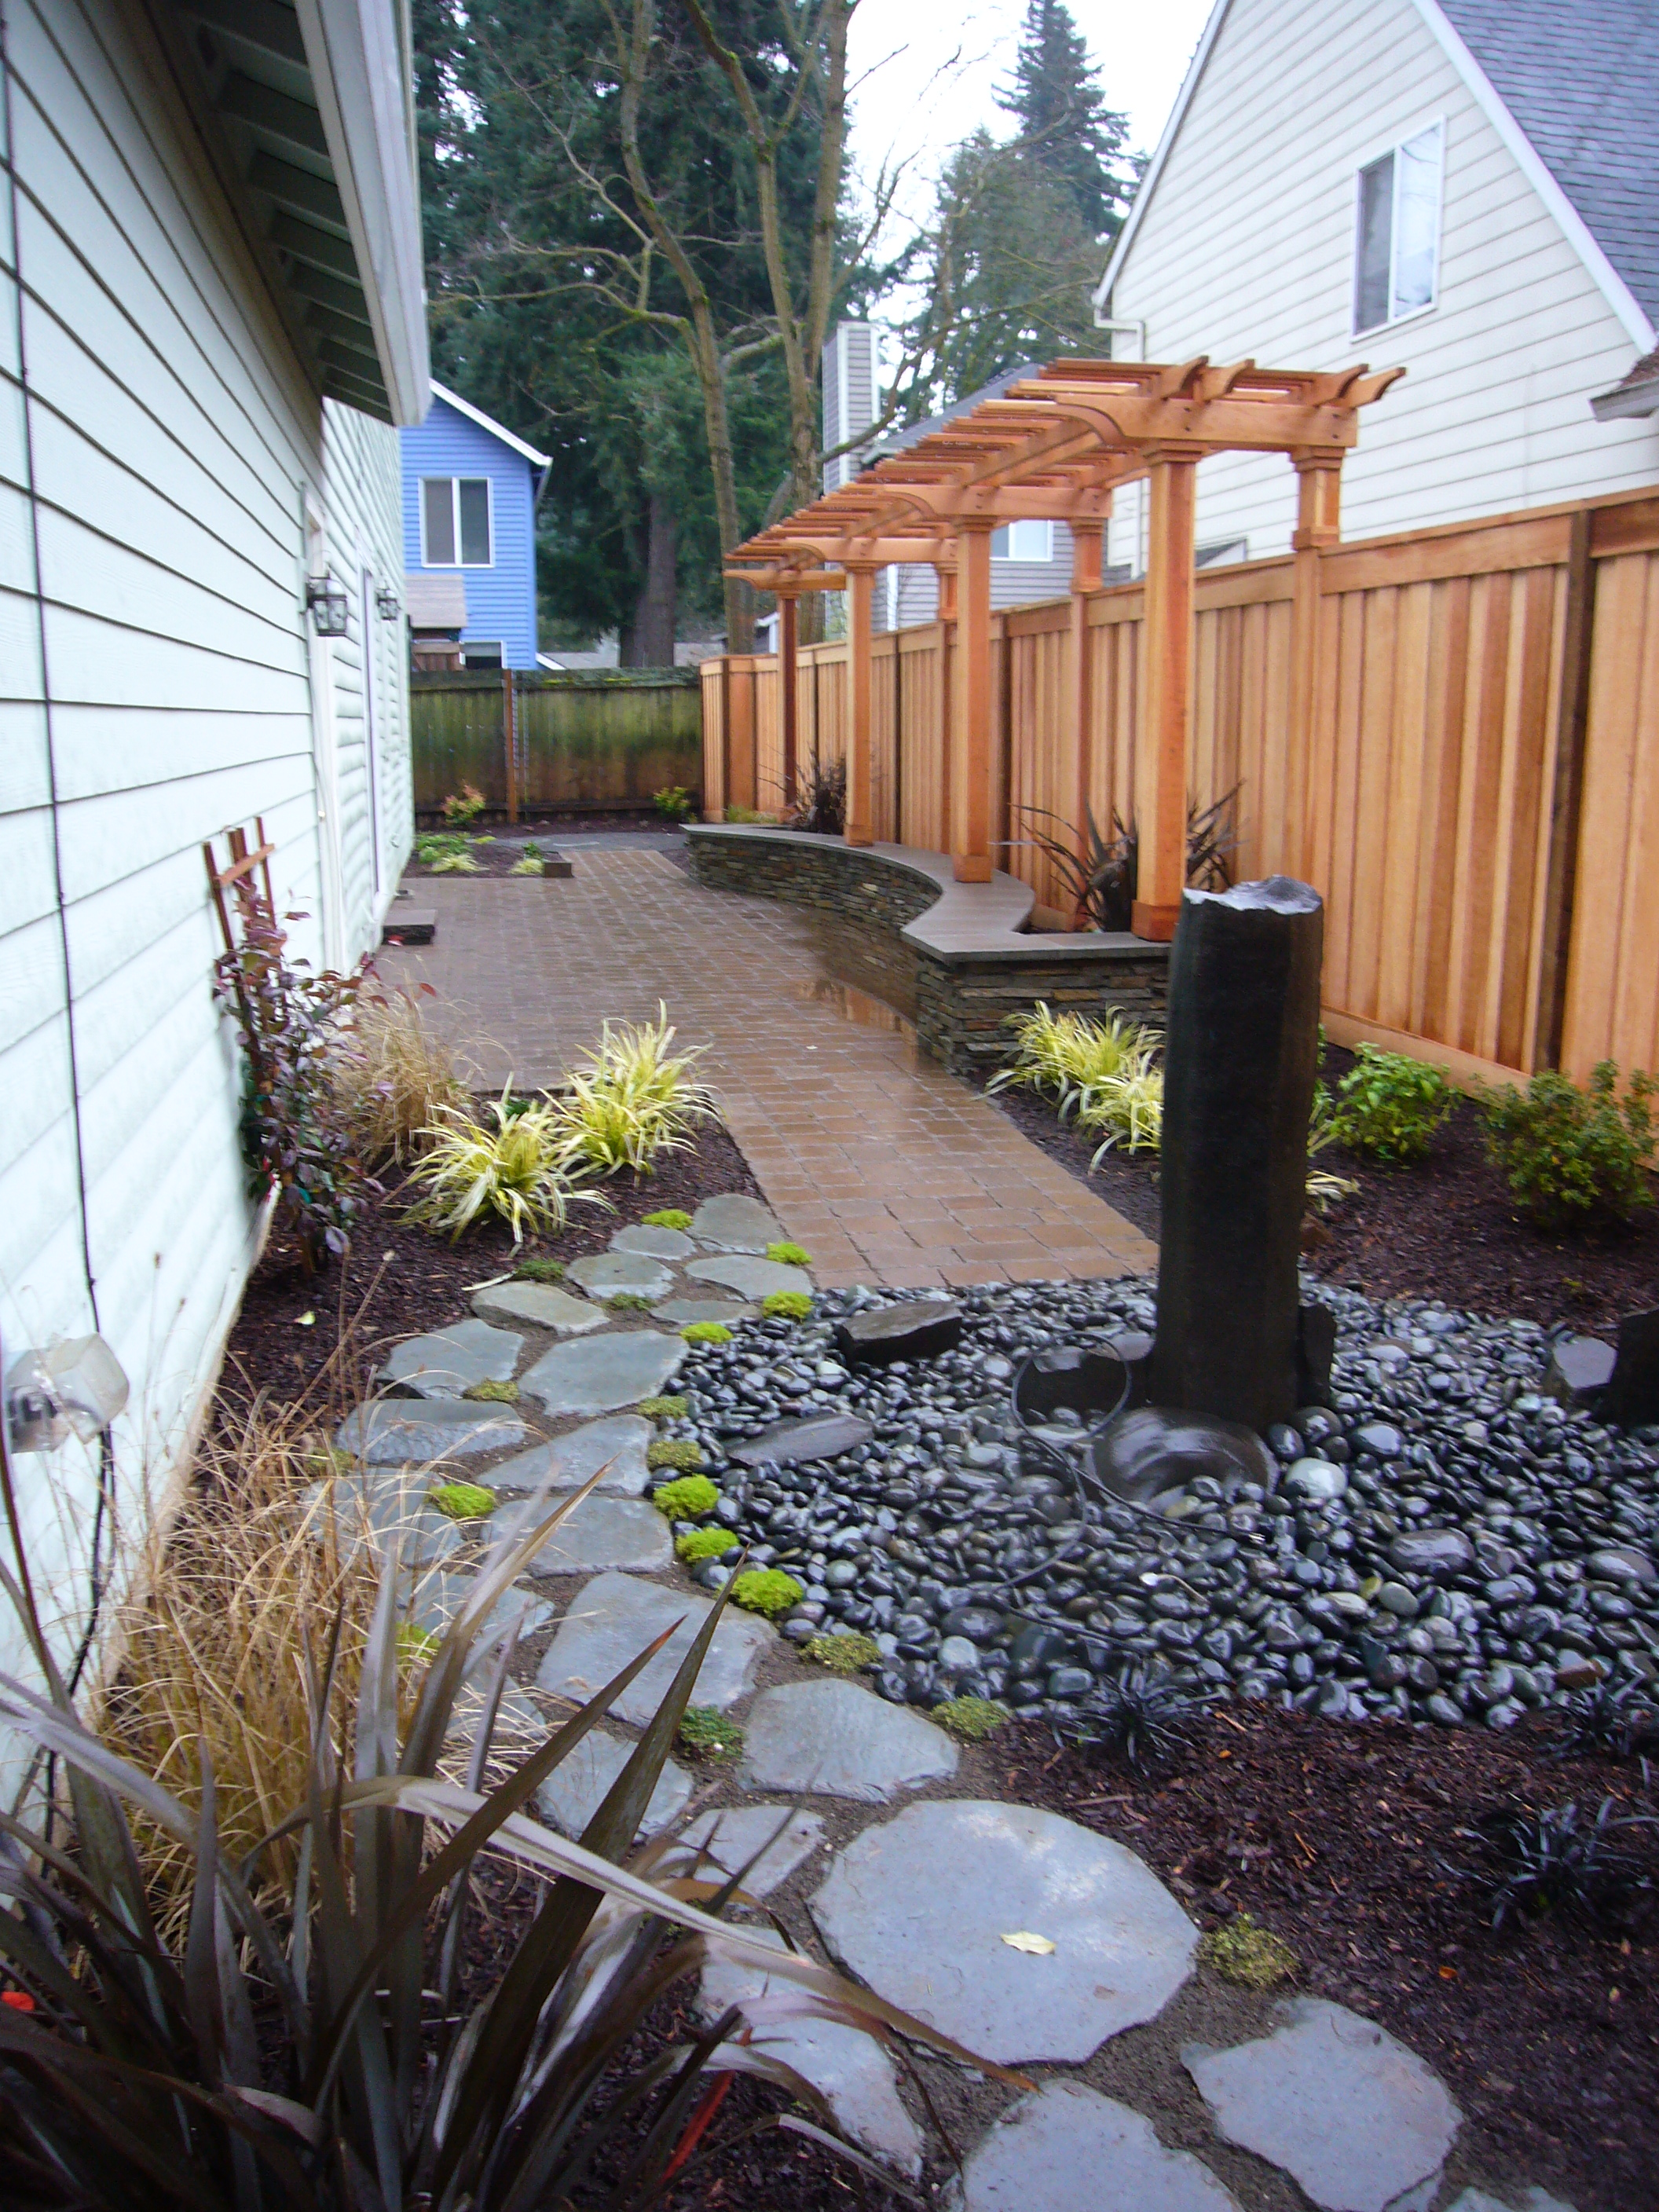 Res27-flagstone,path,waterfeature,riverrock,woodfence,pergola